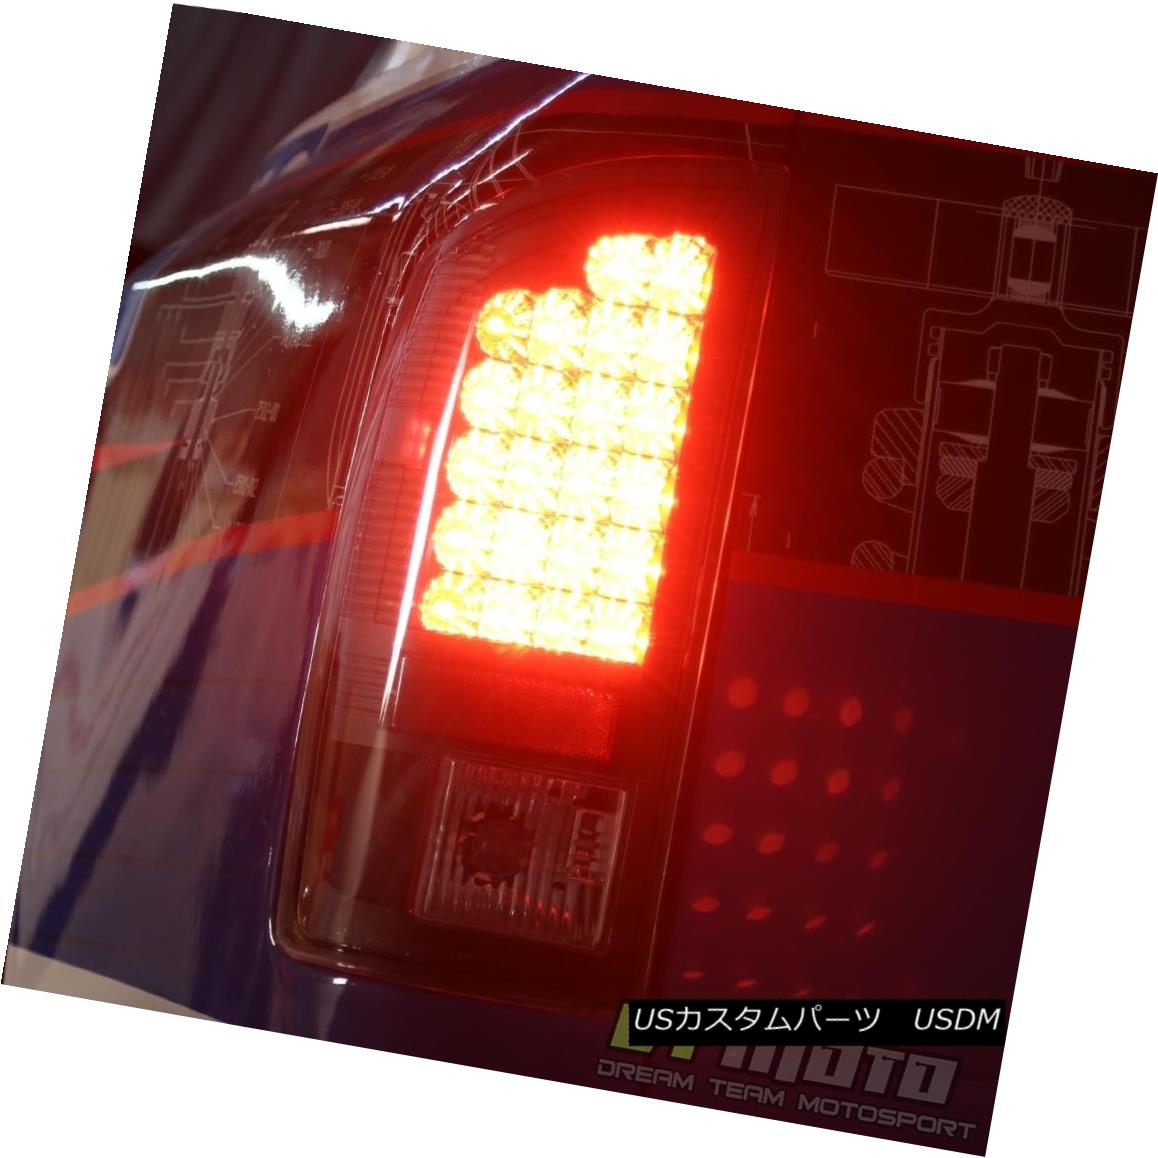 テールライト 1500/09 Black 2007-2008 Dodge Ram 1500 Ram Ram/09 Ram 2500 3500 Philips Lumiled LED Tail Lights 黒2007-2008 Dodge Ram 1500/09 Ram 2500 3500 Philips Lumiled LEDテールライト, スイムショップアクア:06c624c7 --- officewill.xsrv.jp